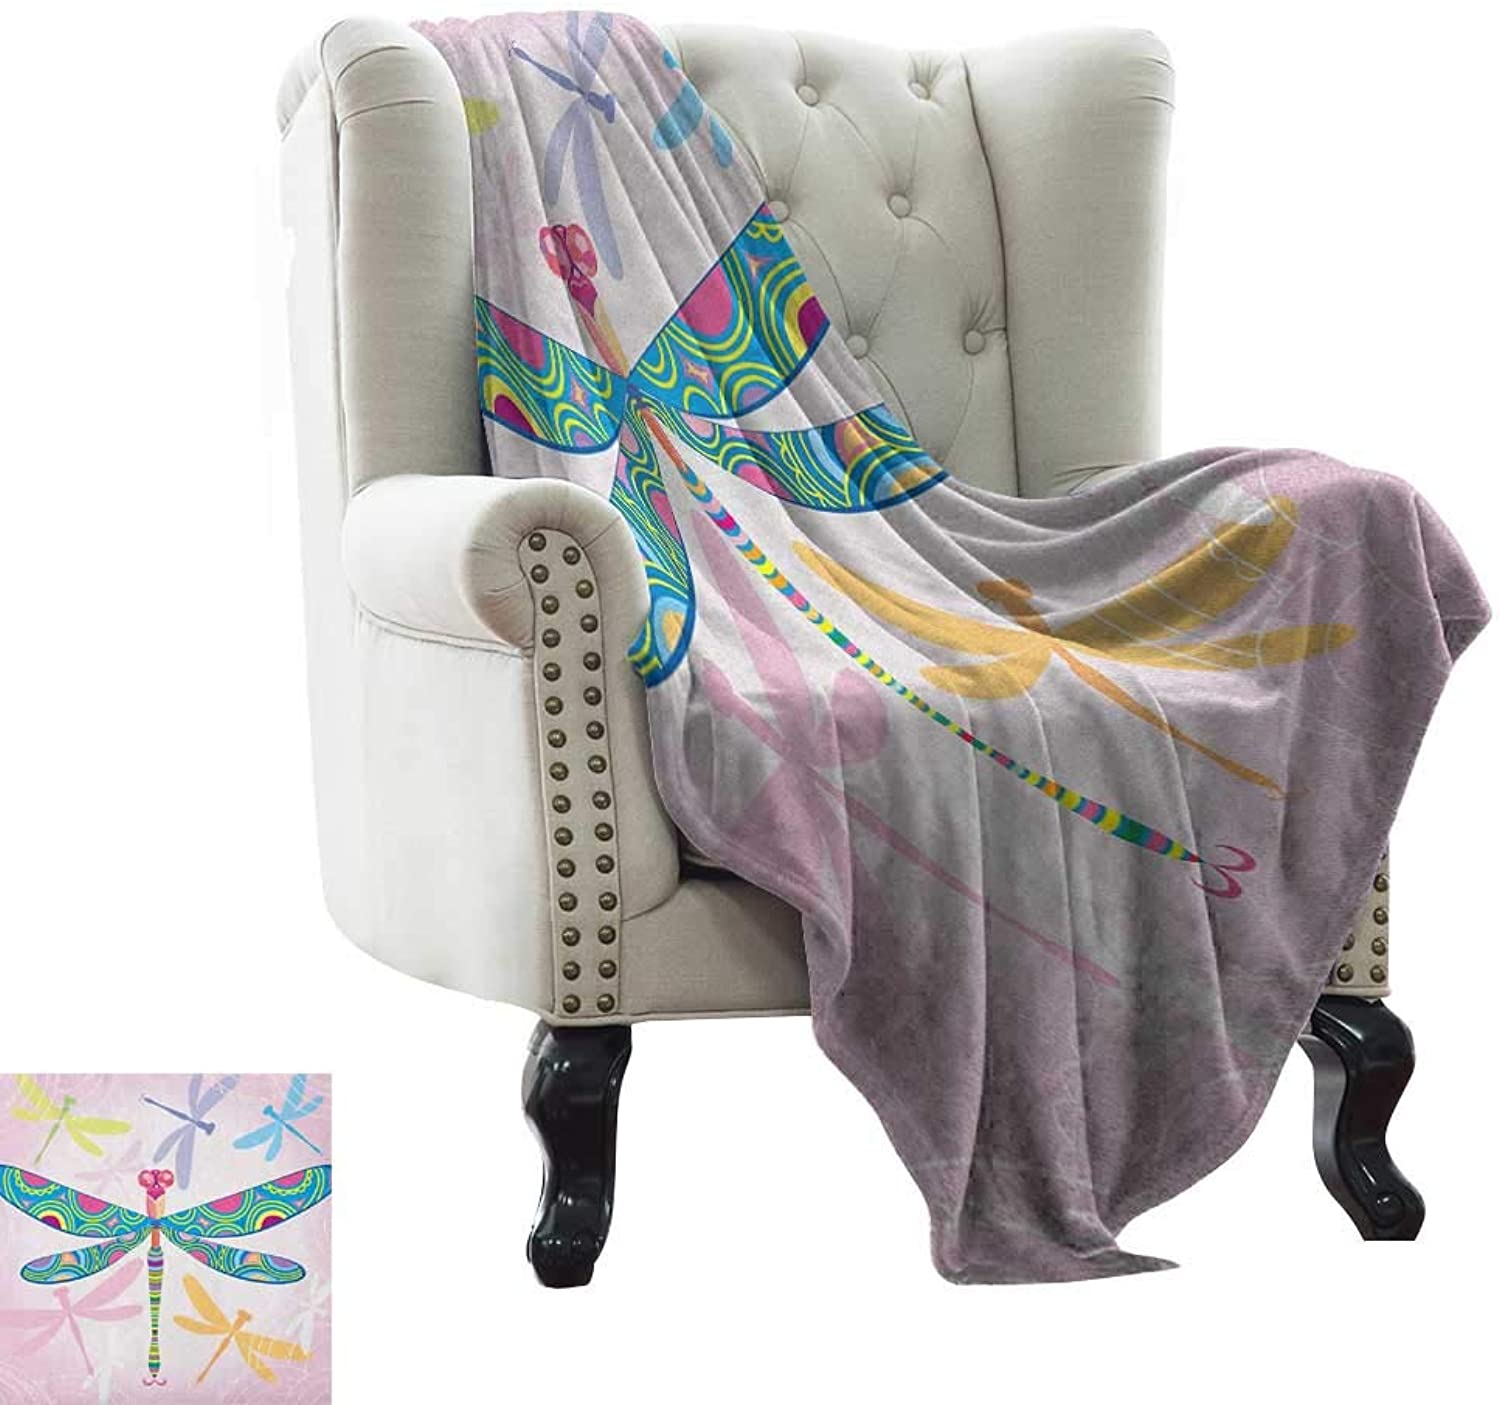 Warmfamily Dragonfly,Digital Printing Blanket,Vibrant Dragonfly Kids Figure in Tones Wildlife Graphic Artwork 60 x36 ,Super Soft and Comfortable,Suitable for Sofas,Chairs,beds